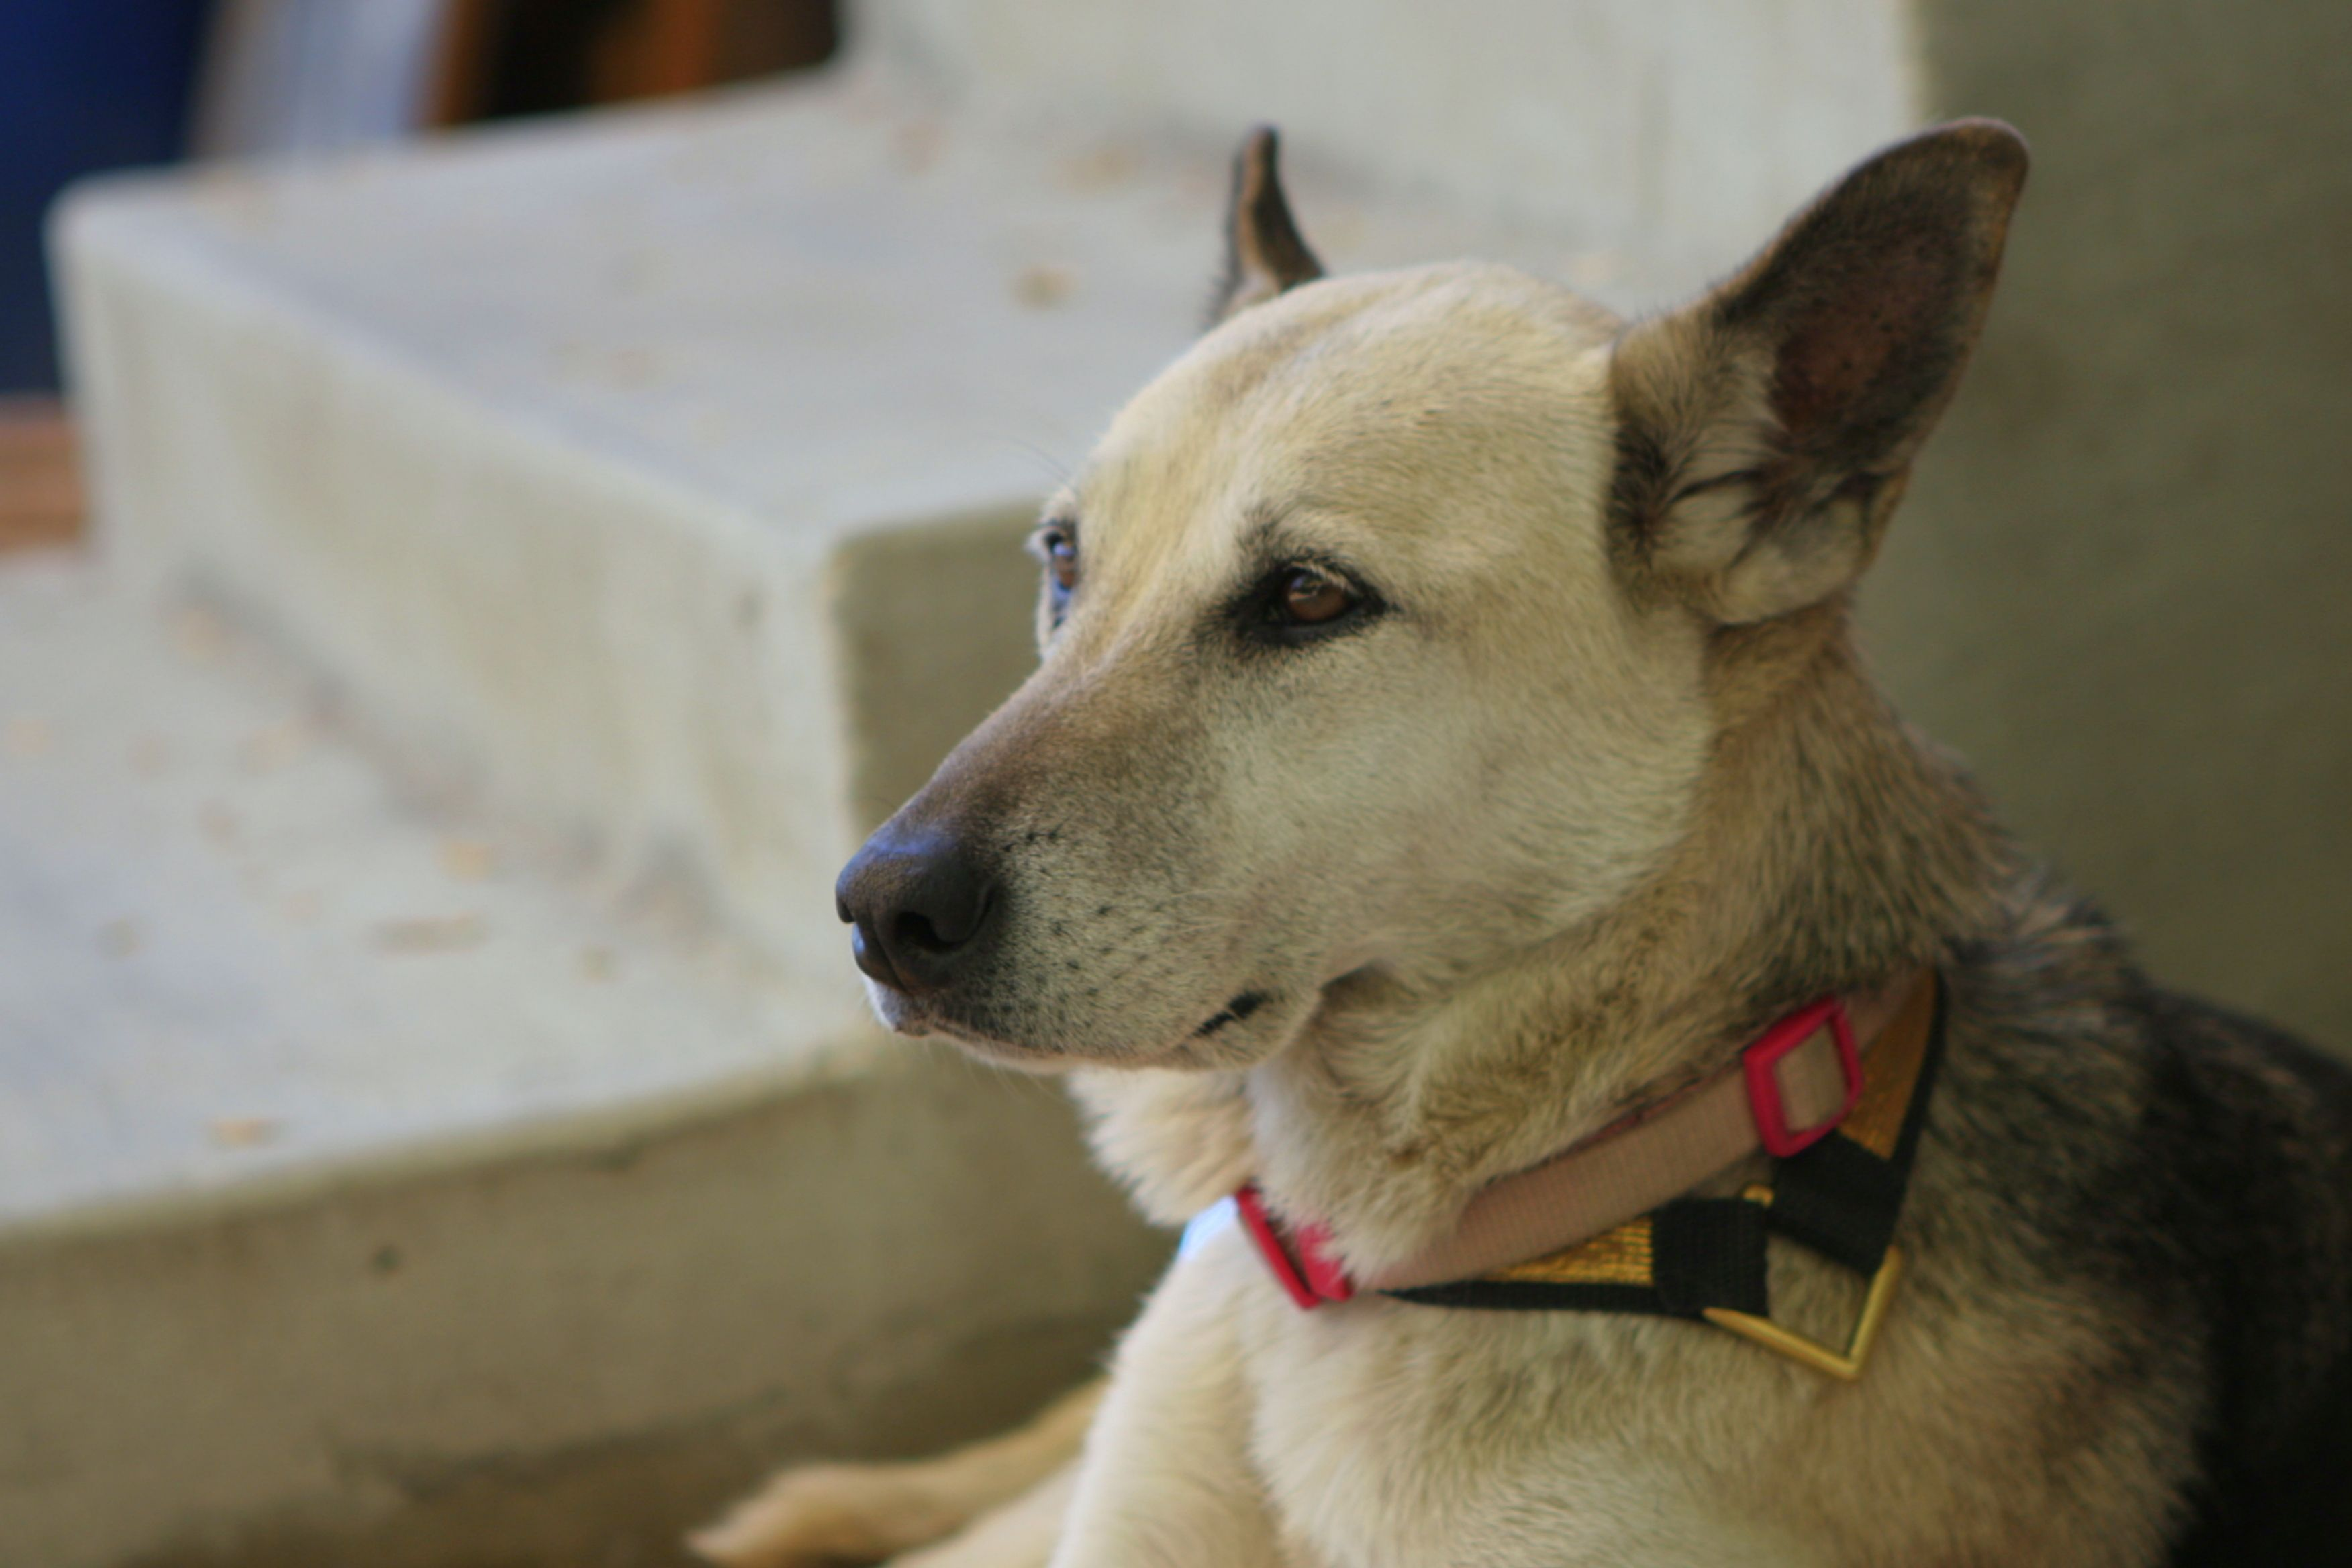 How to Treat Dog Mange With Home Reme s